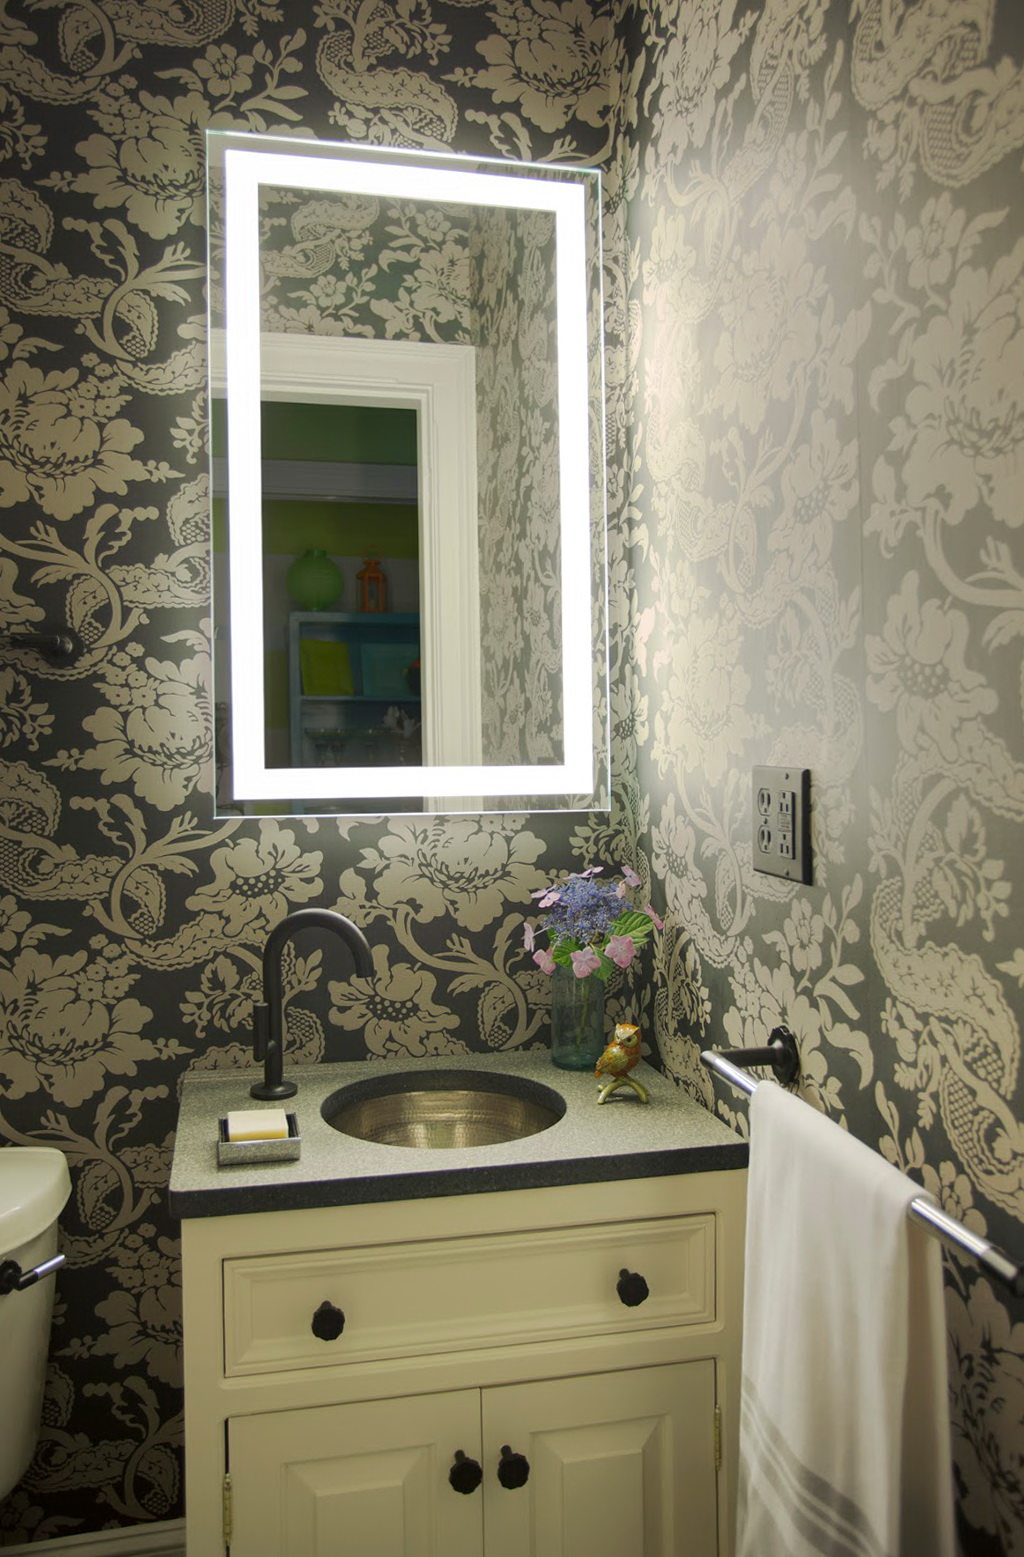 Lighted Makeup Mirrors At Target Home Design Ideas